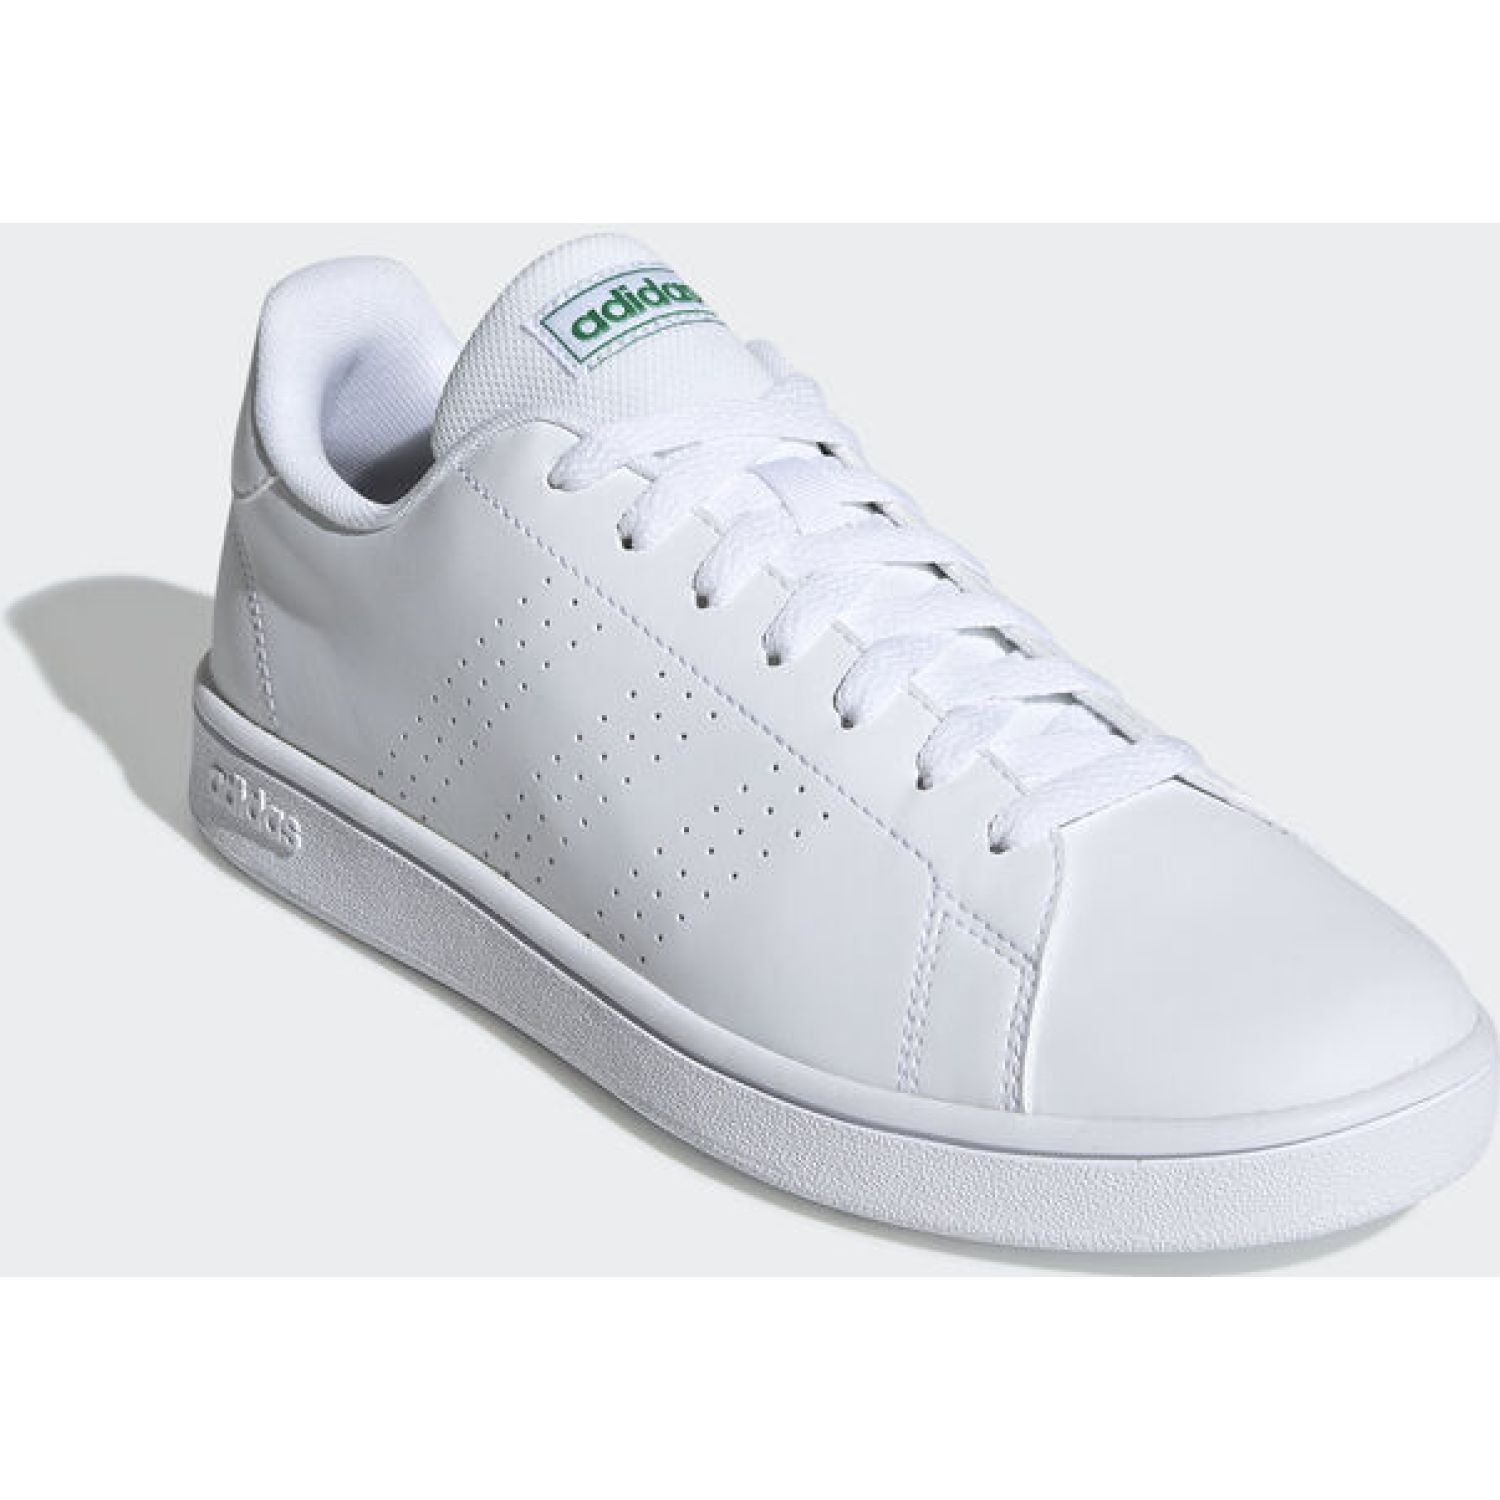 Adidas advantage base Blanco / verde Walking